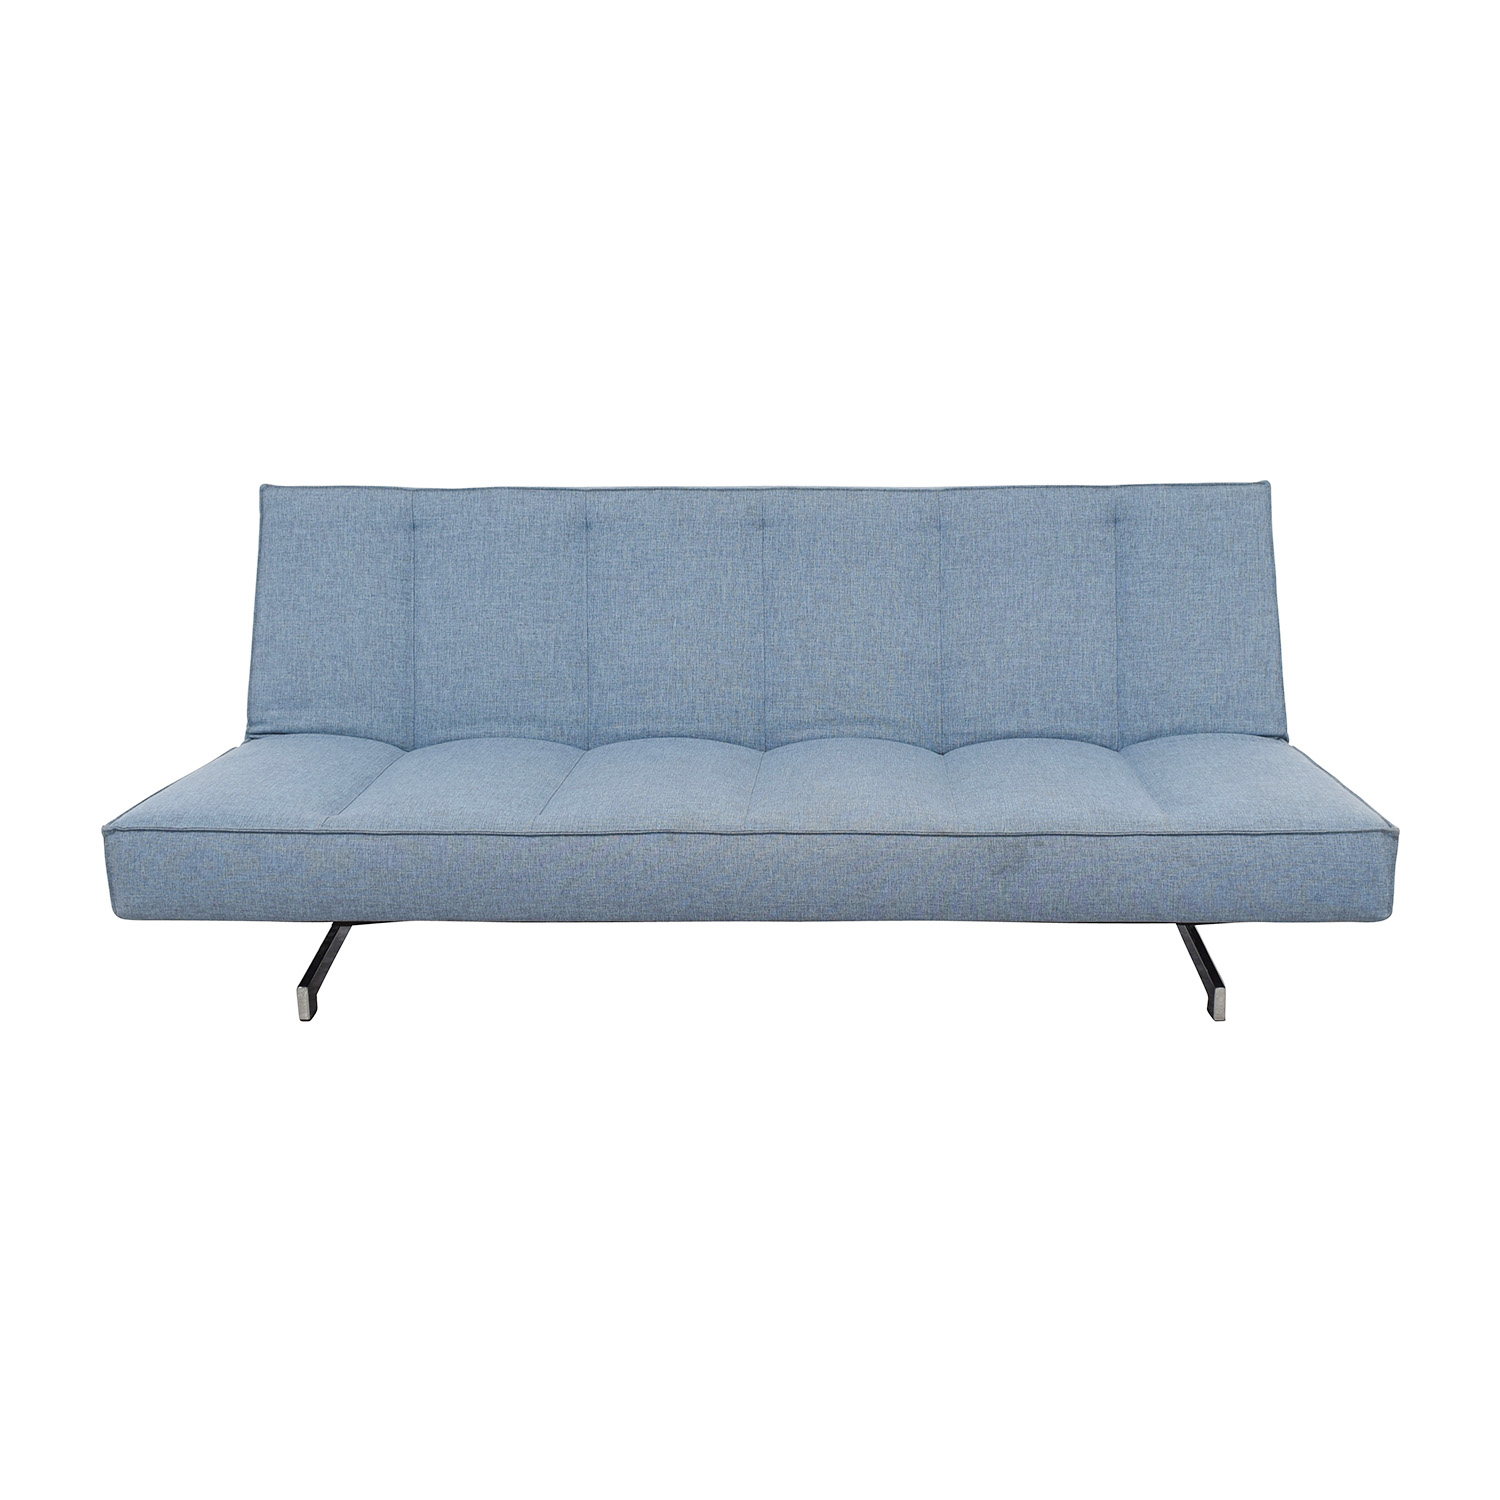 Cool 35 Off Cb2 Cb2 Frost Flex Sleeper Sofas Pdpeps Interior Chair Design Pdpepsorg